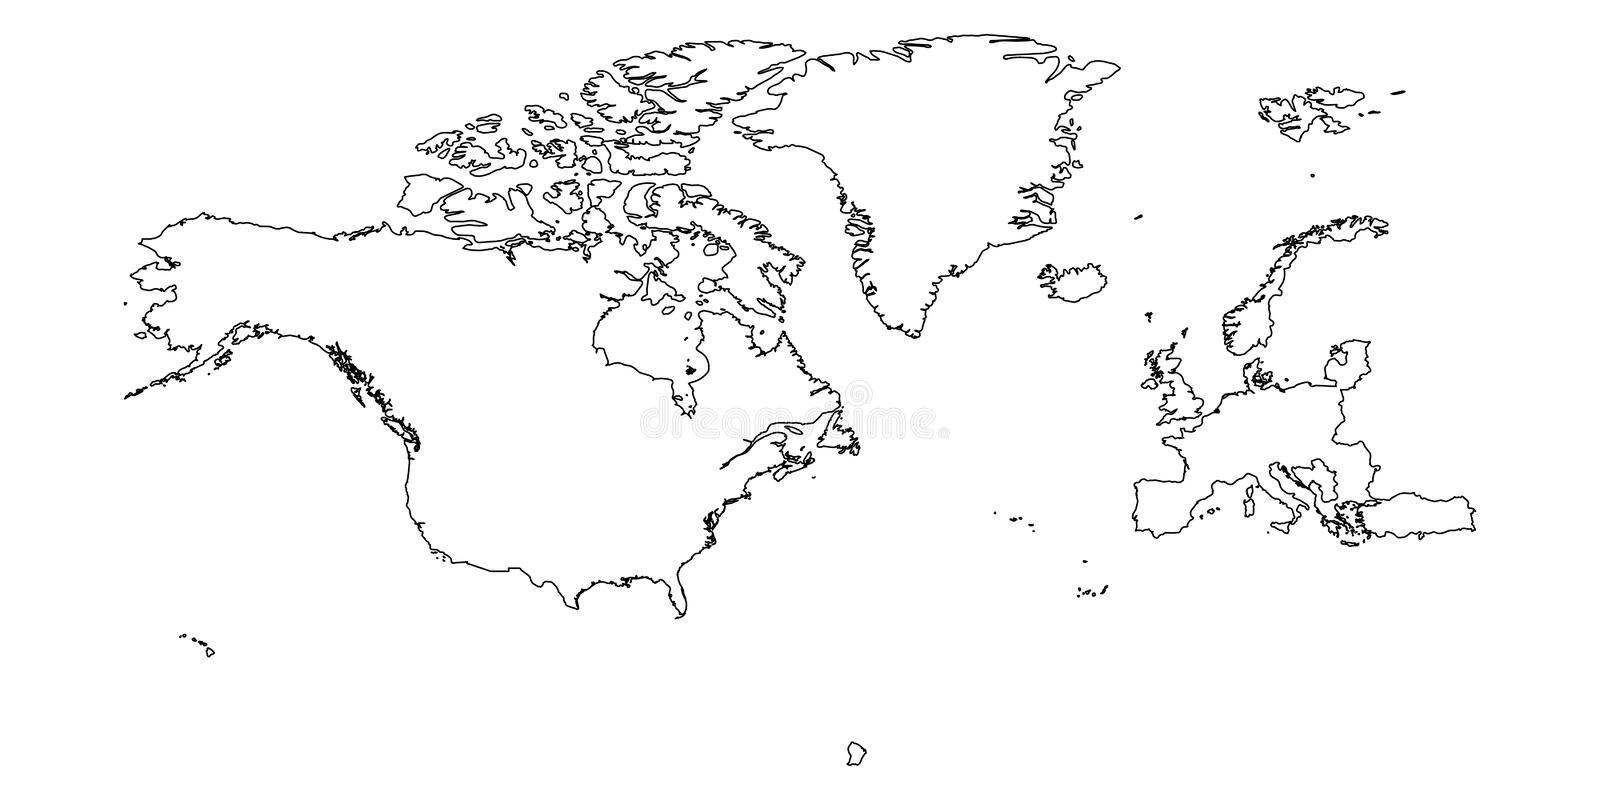 North Atlantic Treaty Organization, NATO, member countries silhouette map.  royalty free illustration